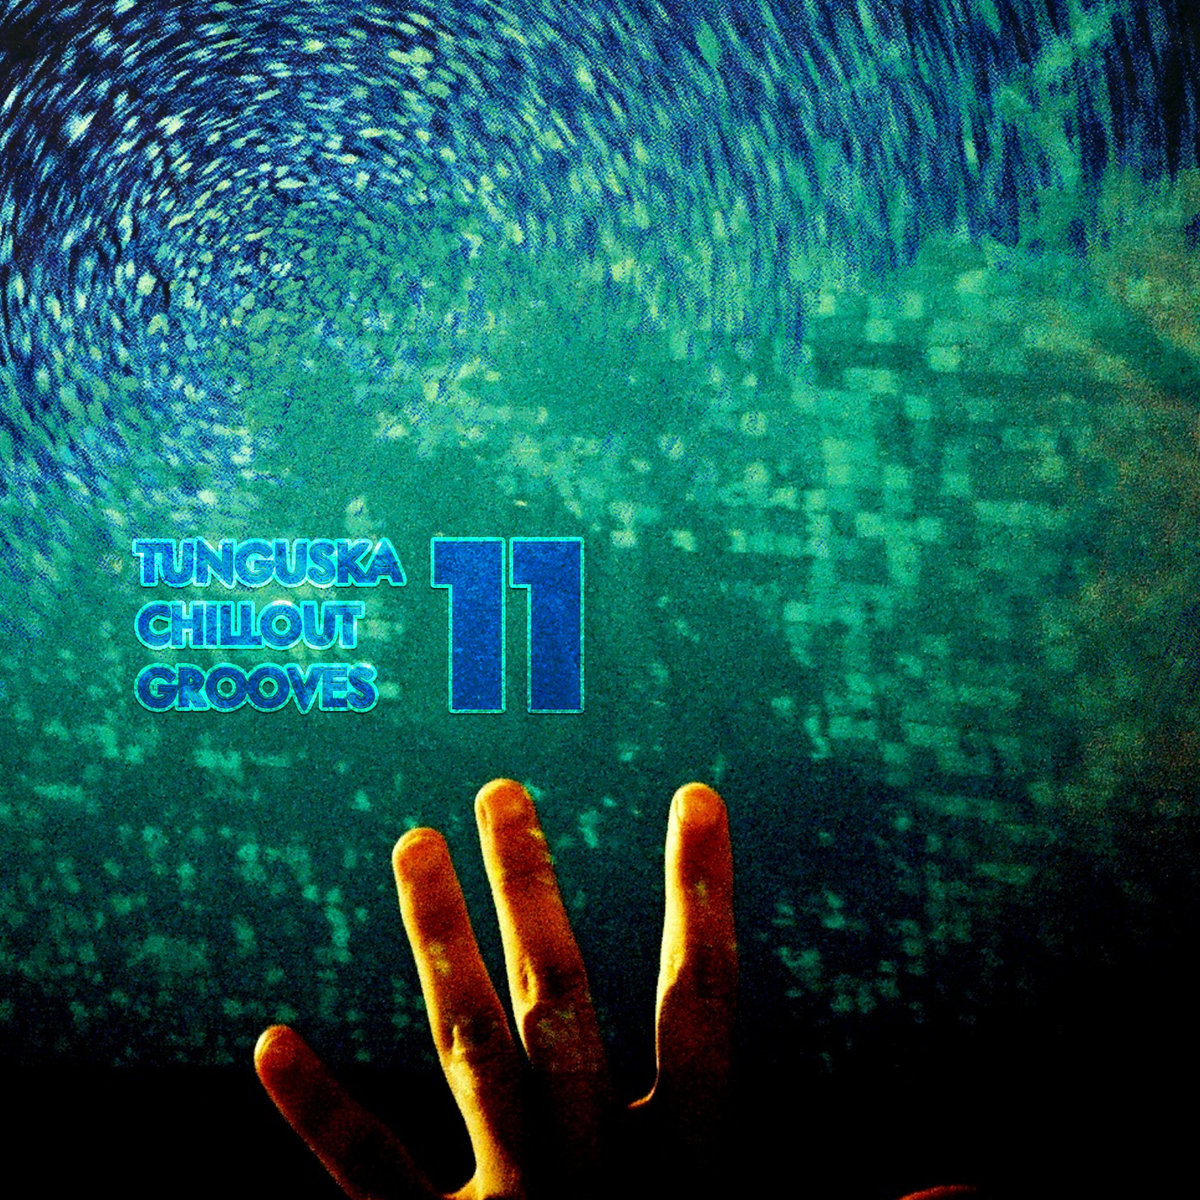 Jane Ray - Pacific Ocean @ 'Tunguska Chillout Grooves - Volume 11' album (electronic, ambient)